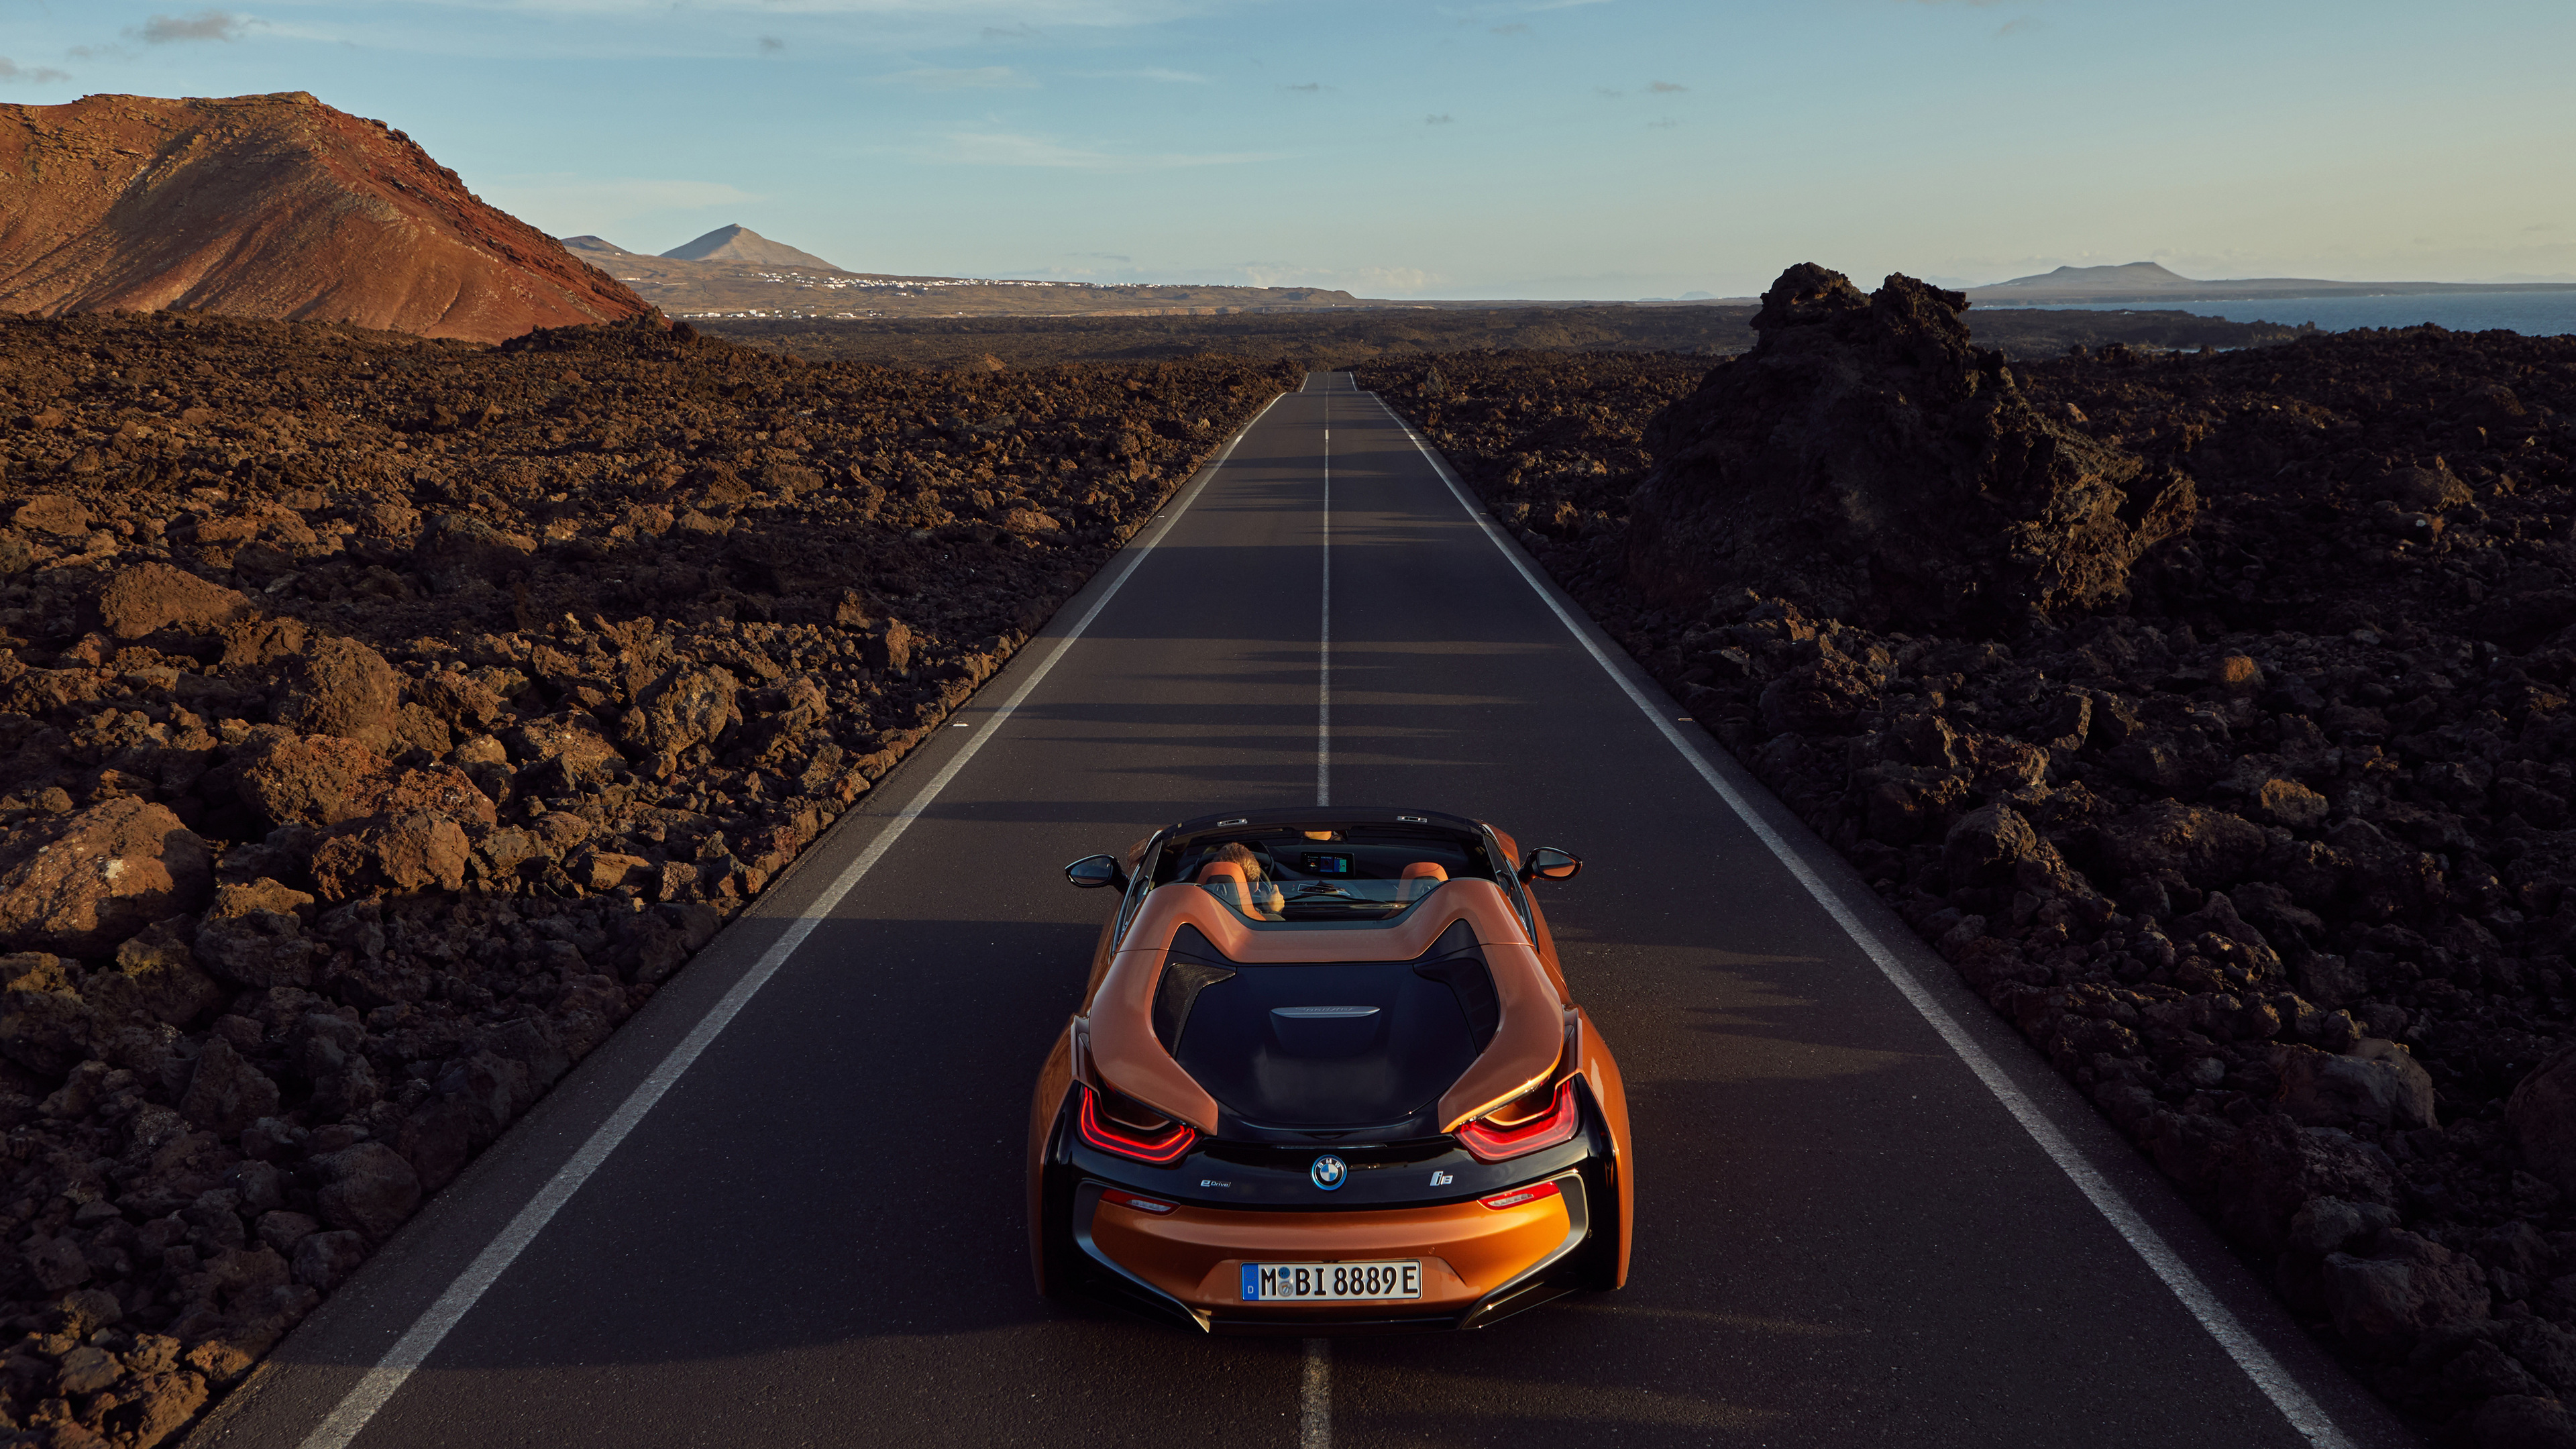 bmw i8 roadster 2018 1539108180 - BMW I8 Roadster 2018 - hd-wallpapers, cars wallpapers, bmw wallpapers, bmw i8 wallpapers, 4k-wallpapers, 2018 cars wallpapers